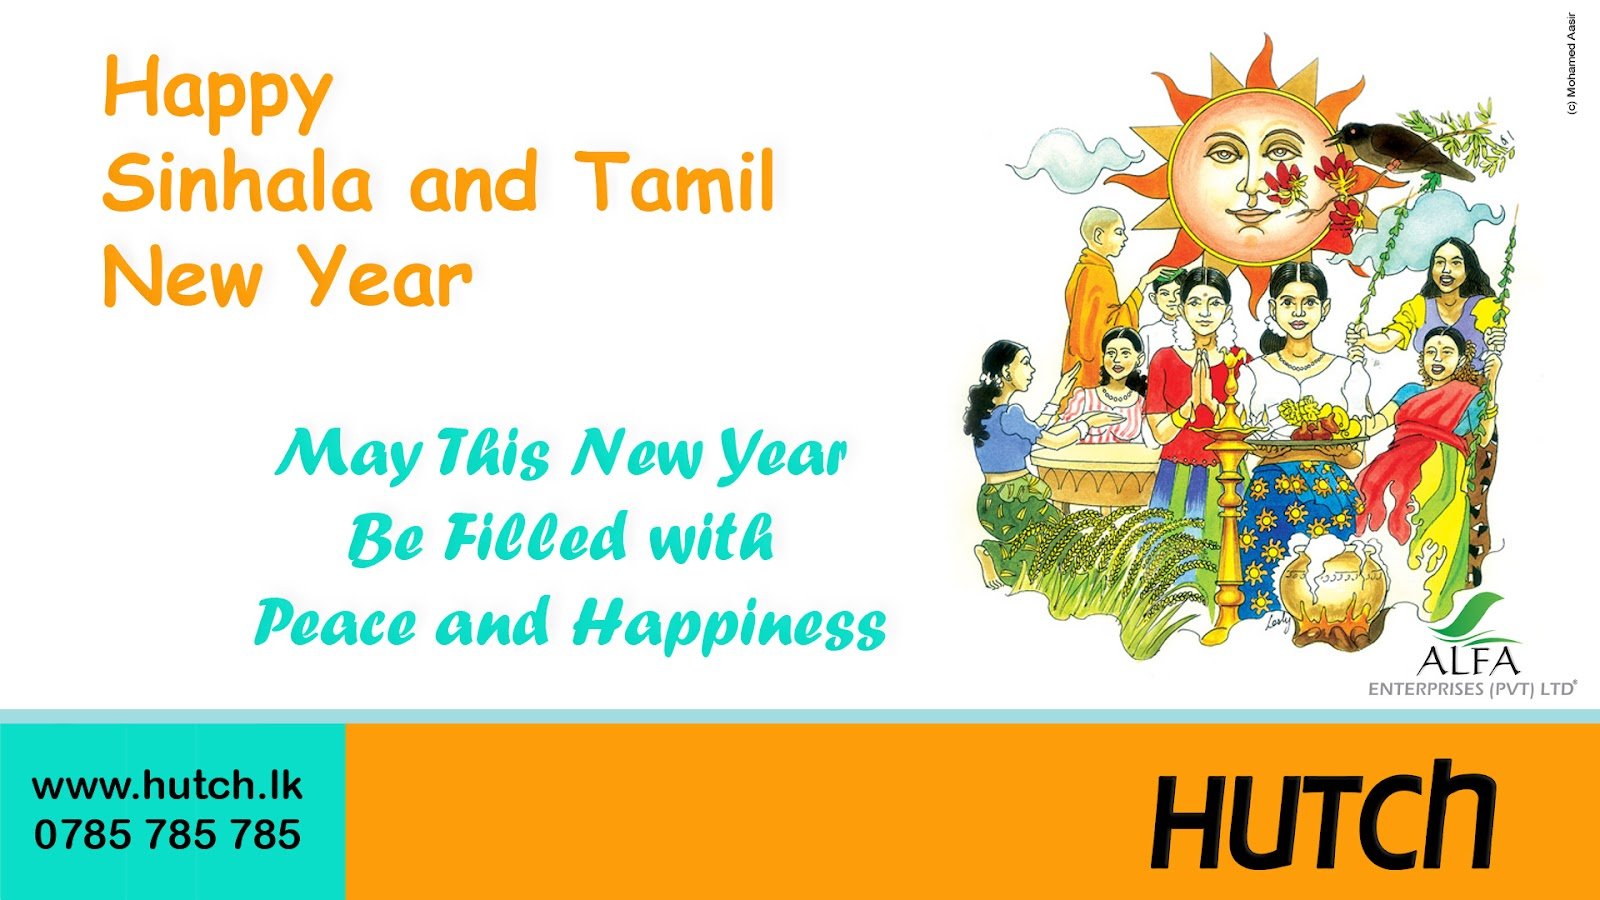 sinhala new year festival essay Tamil new year essay for students, kids and children given here hindi, tamil, telugu, oriya, malayalam, english, assamese, bengali, bhojpuri, and more.